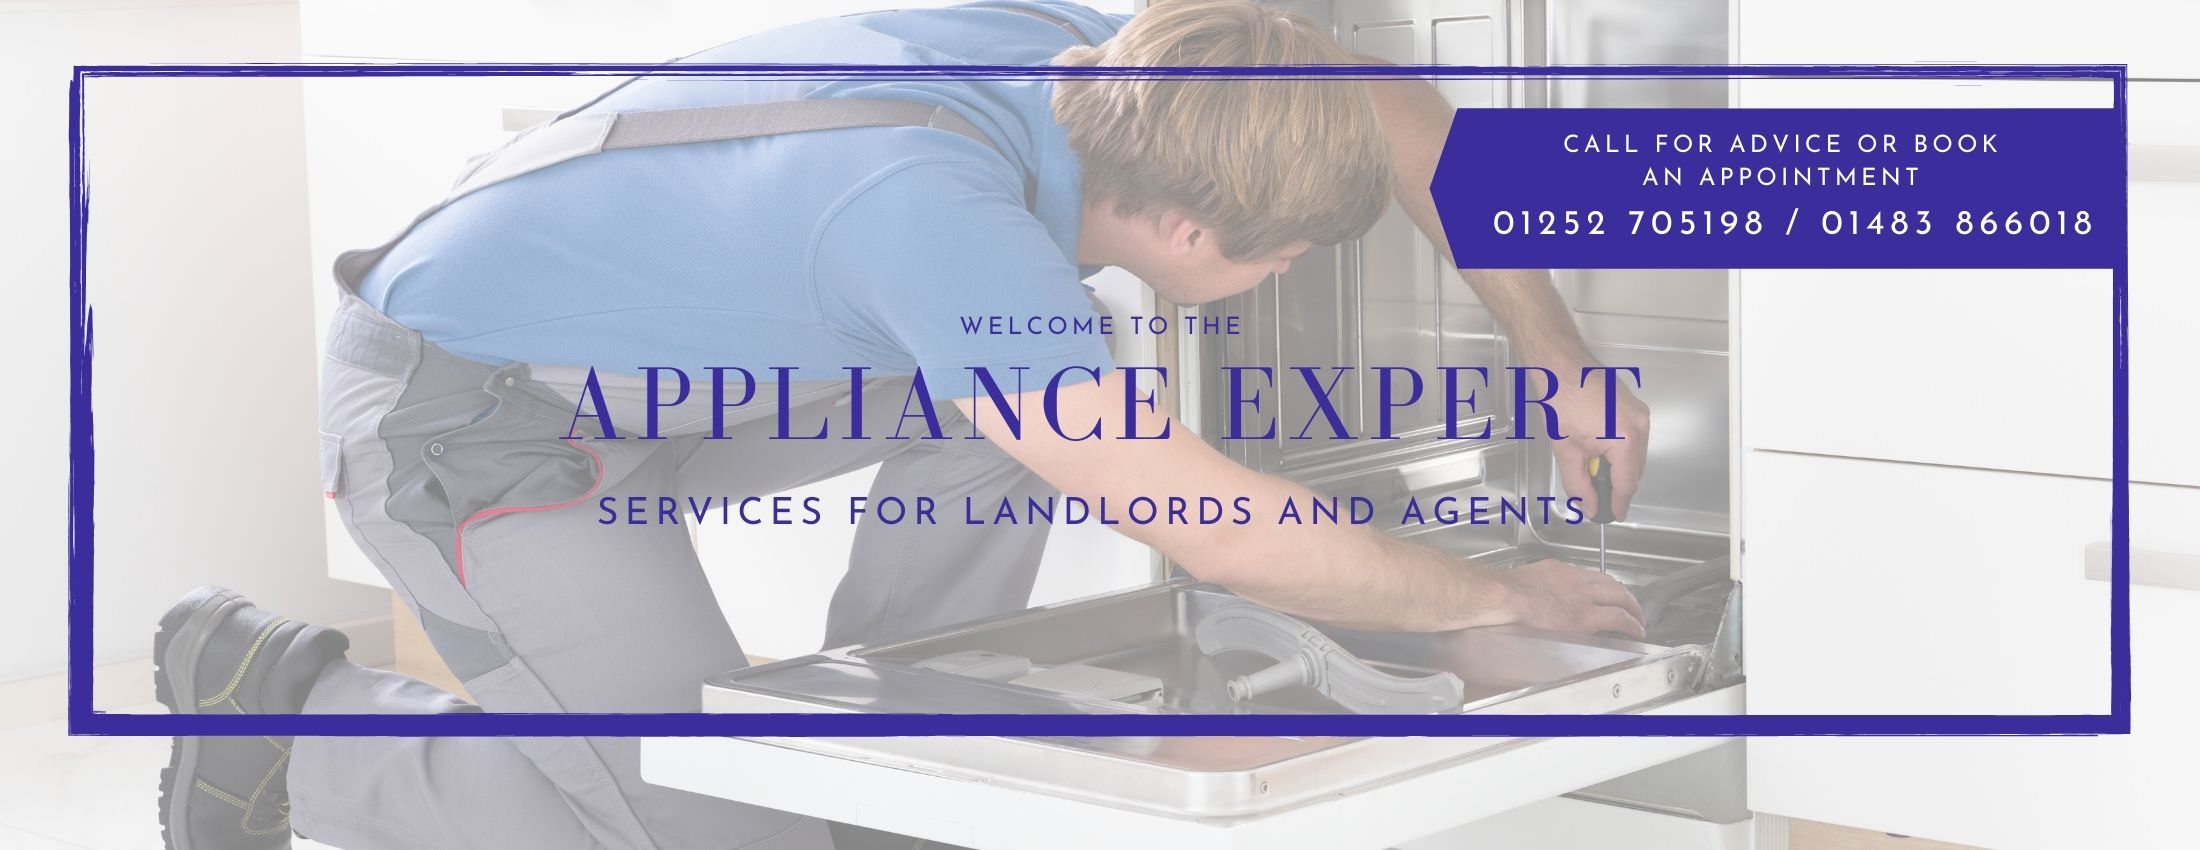 Appliance Expert offering services to landlords and agents.